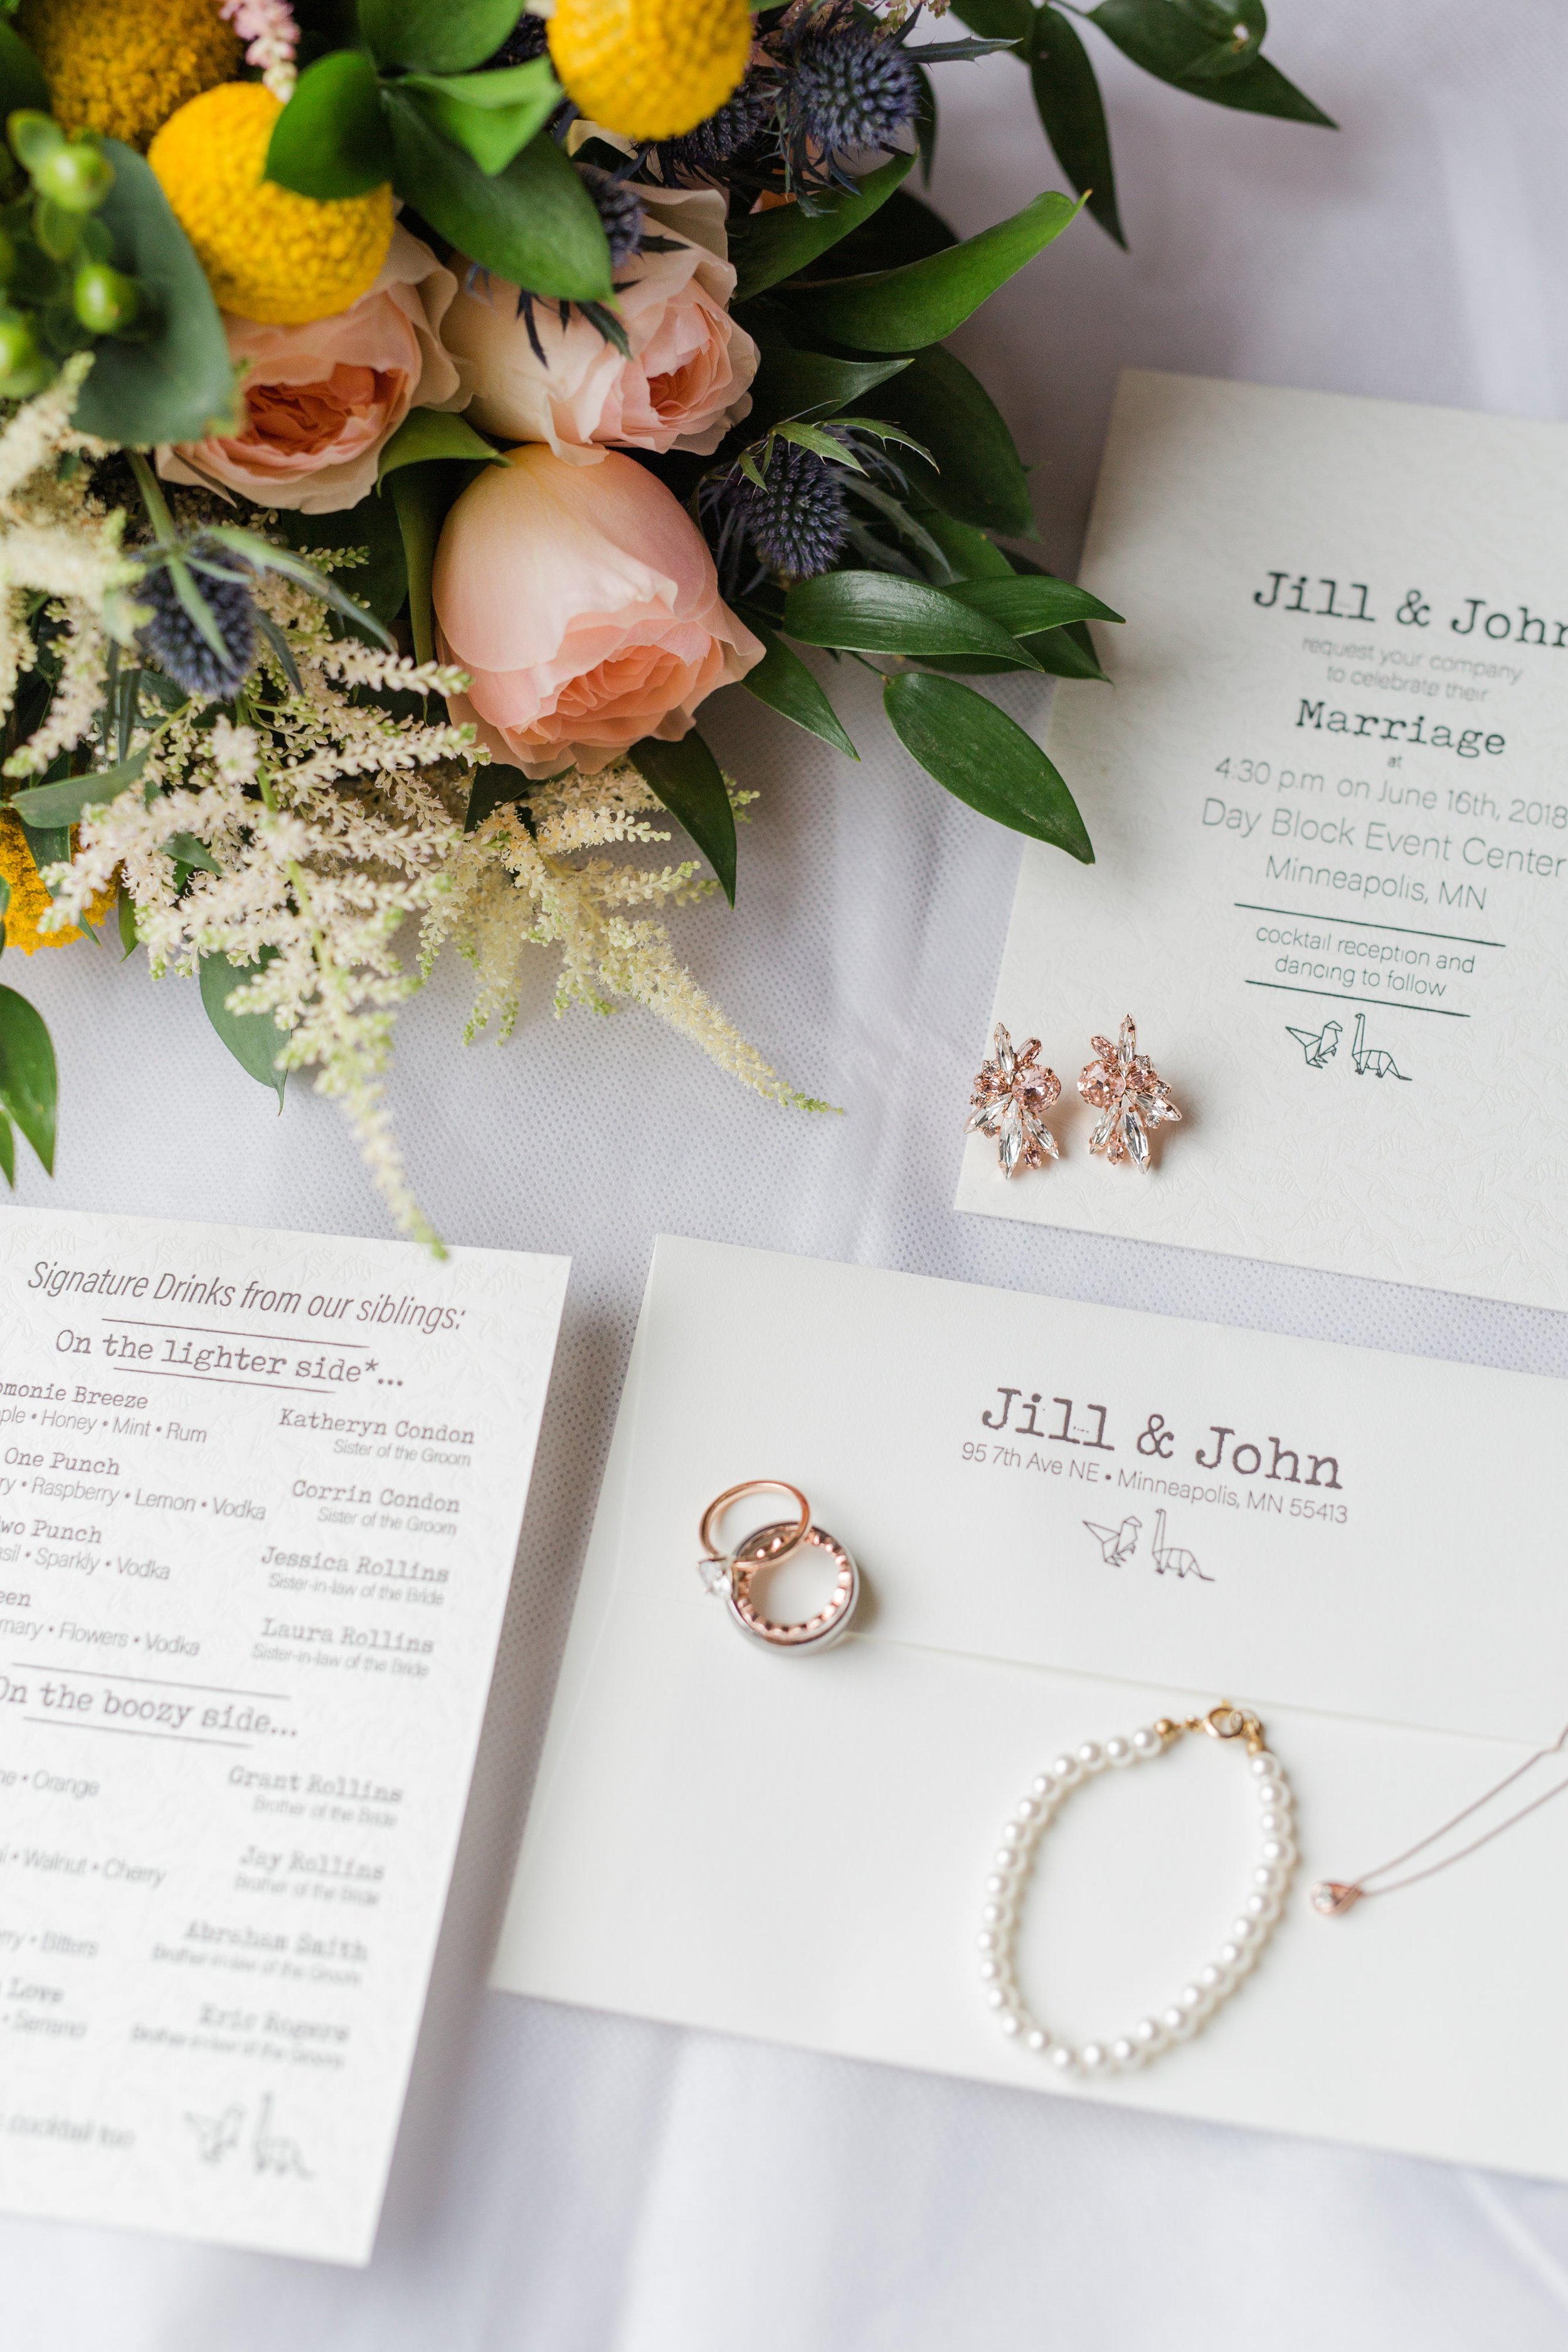 Jill + John :: Kristen Dyer :: Sixpence Events details photo   paper crane dinosaurs, letter press, rose gold, white astilbe and italian ruscus with blue thistle